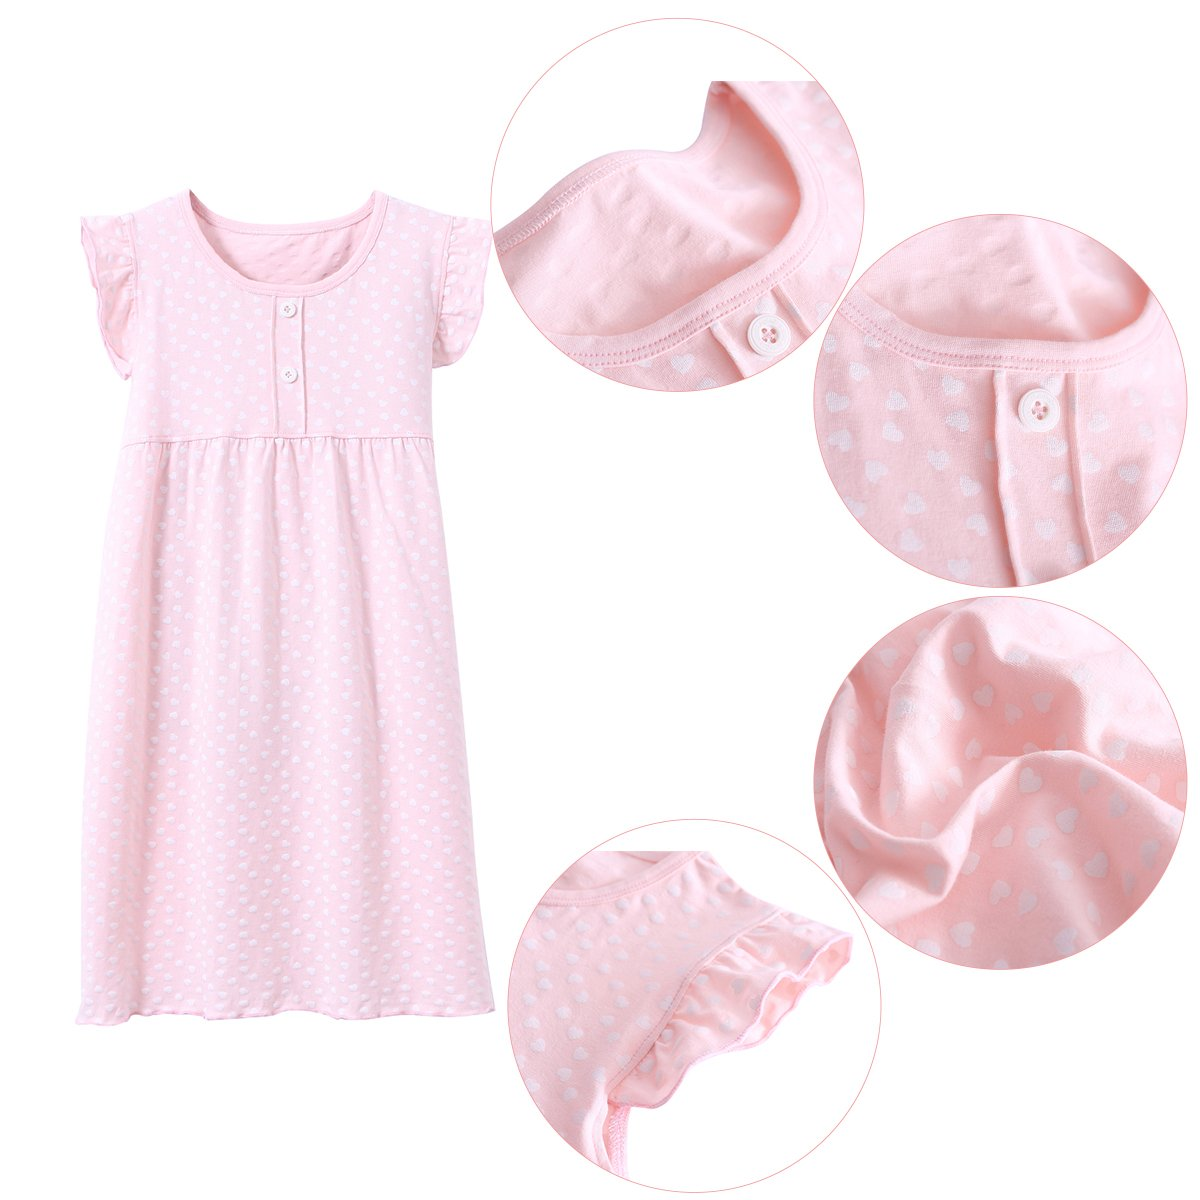 DGAGA Little Girls Princess Nightgown Cotton Lace Bowknot Sleepwear Nightdress (7-8 Years/140cm, Pink) by DGAGA (Image #2)